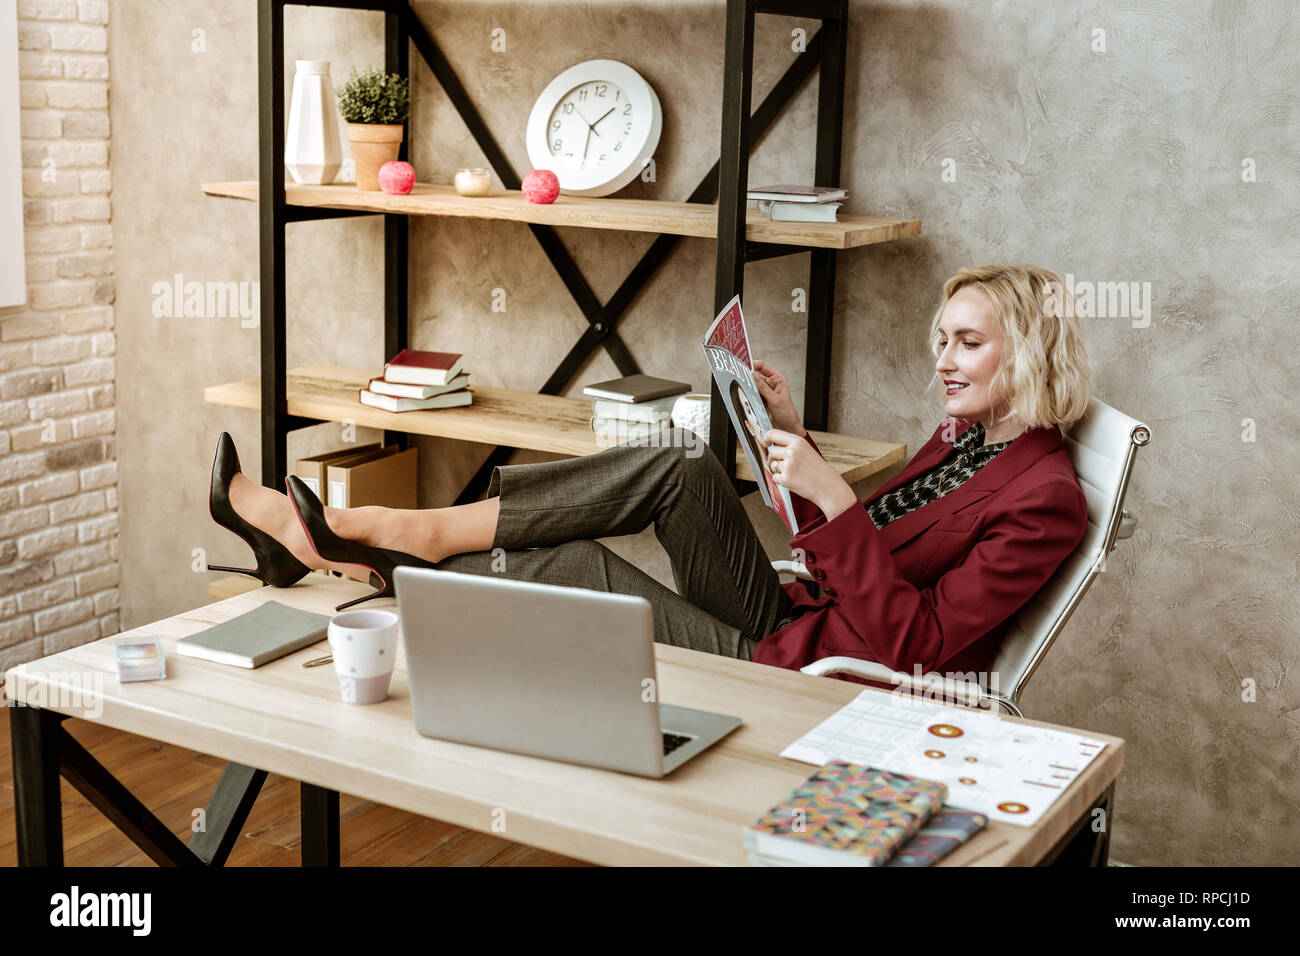 Unprofessional short-haired woman putting her legs on office table - Stock Image